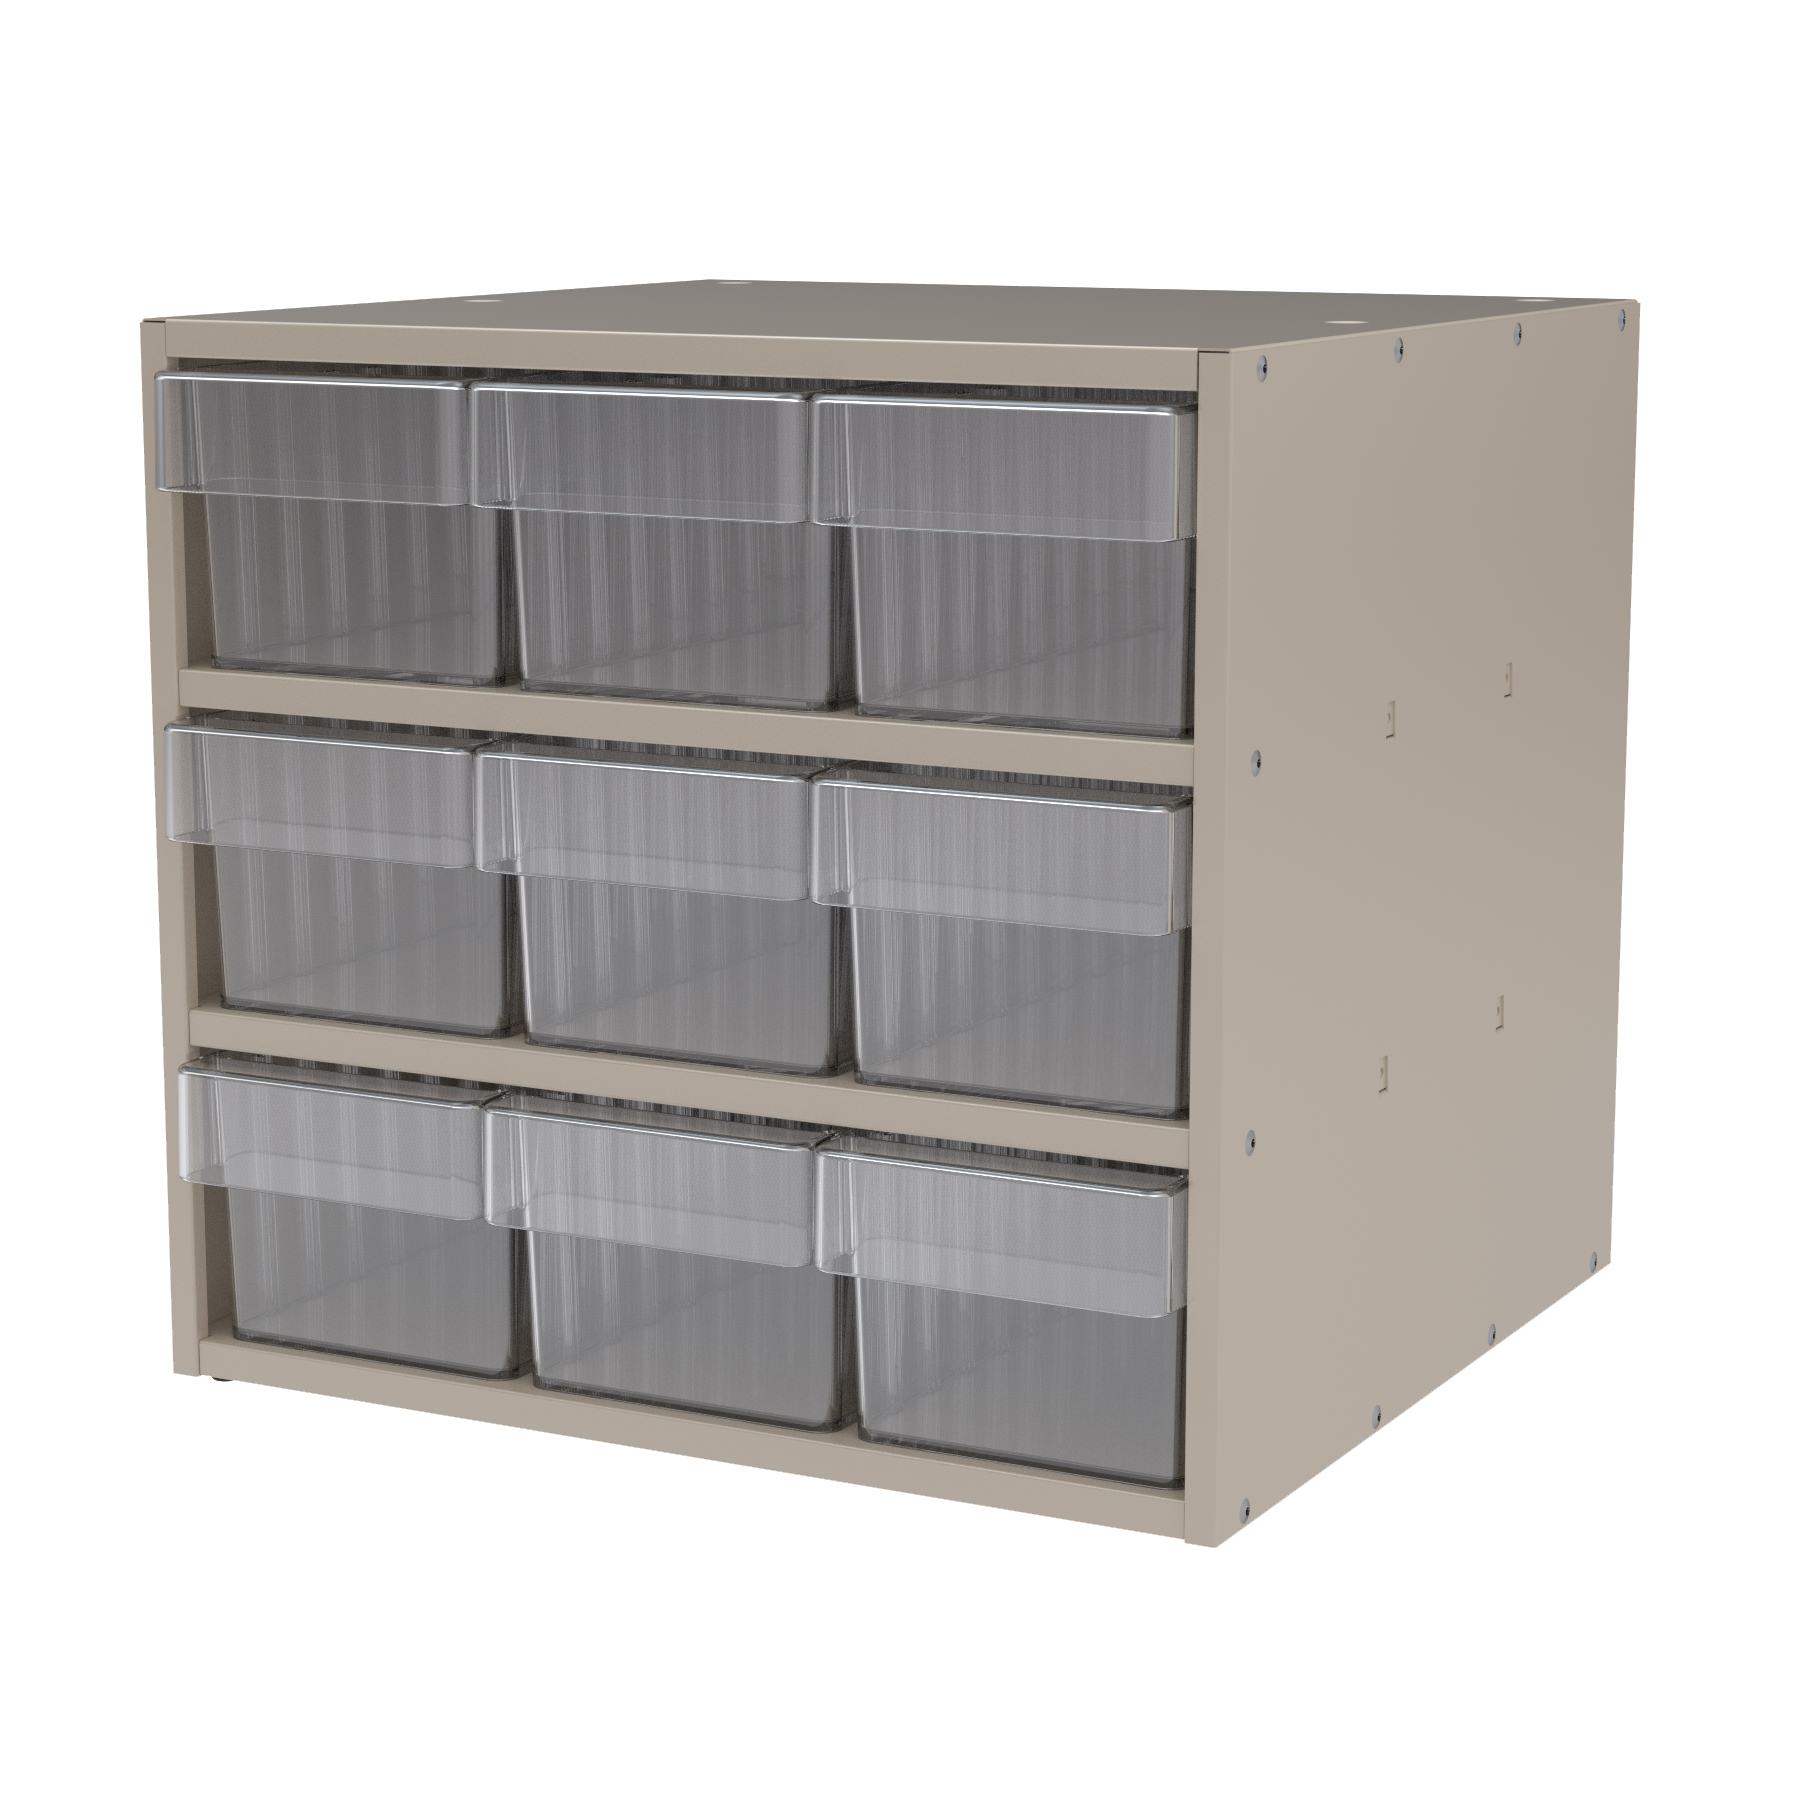 Item DISCONTINUED by Manufacturer.  Modular Cabinet, 18x17x16, 9 Drawers, Putty/Clear (AD1817P68CRY).  This item sold in carton quantities of 1.